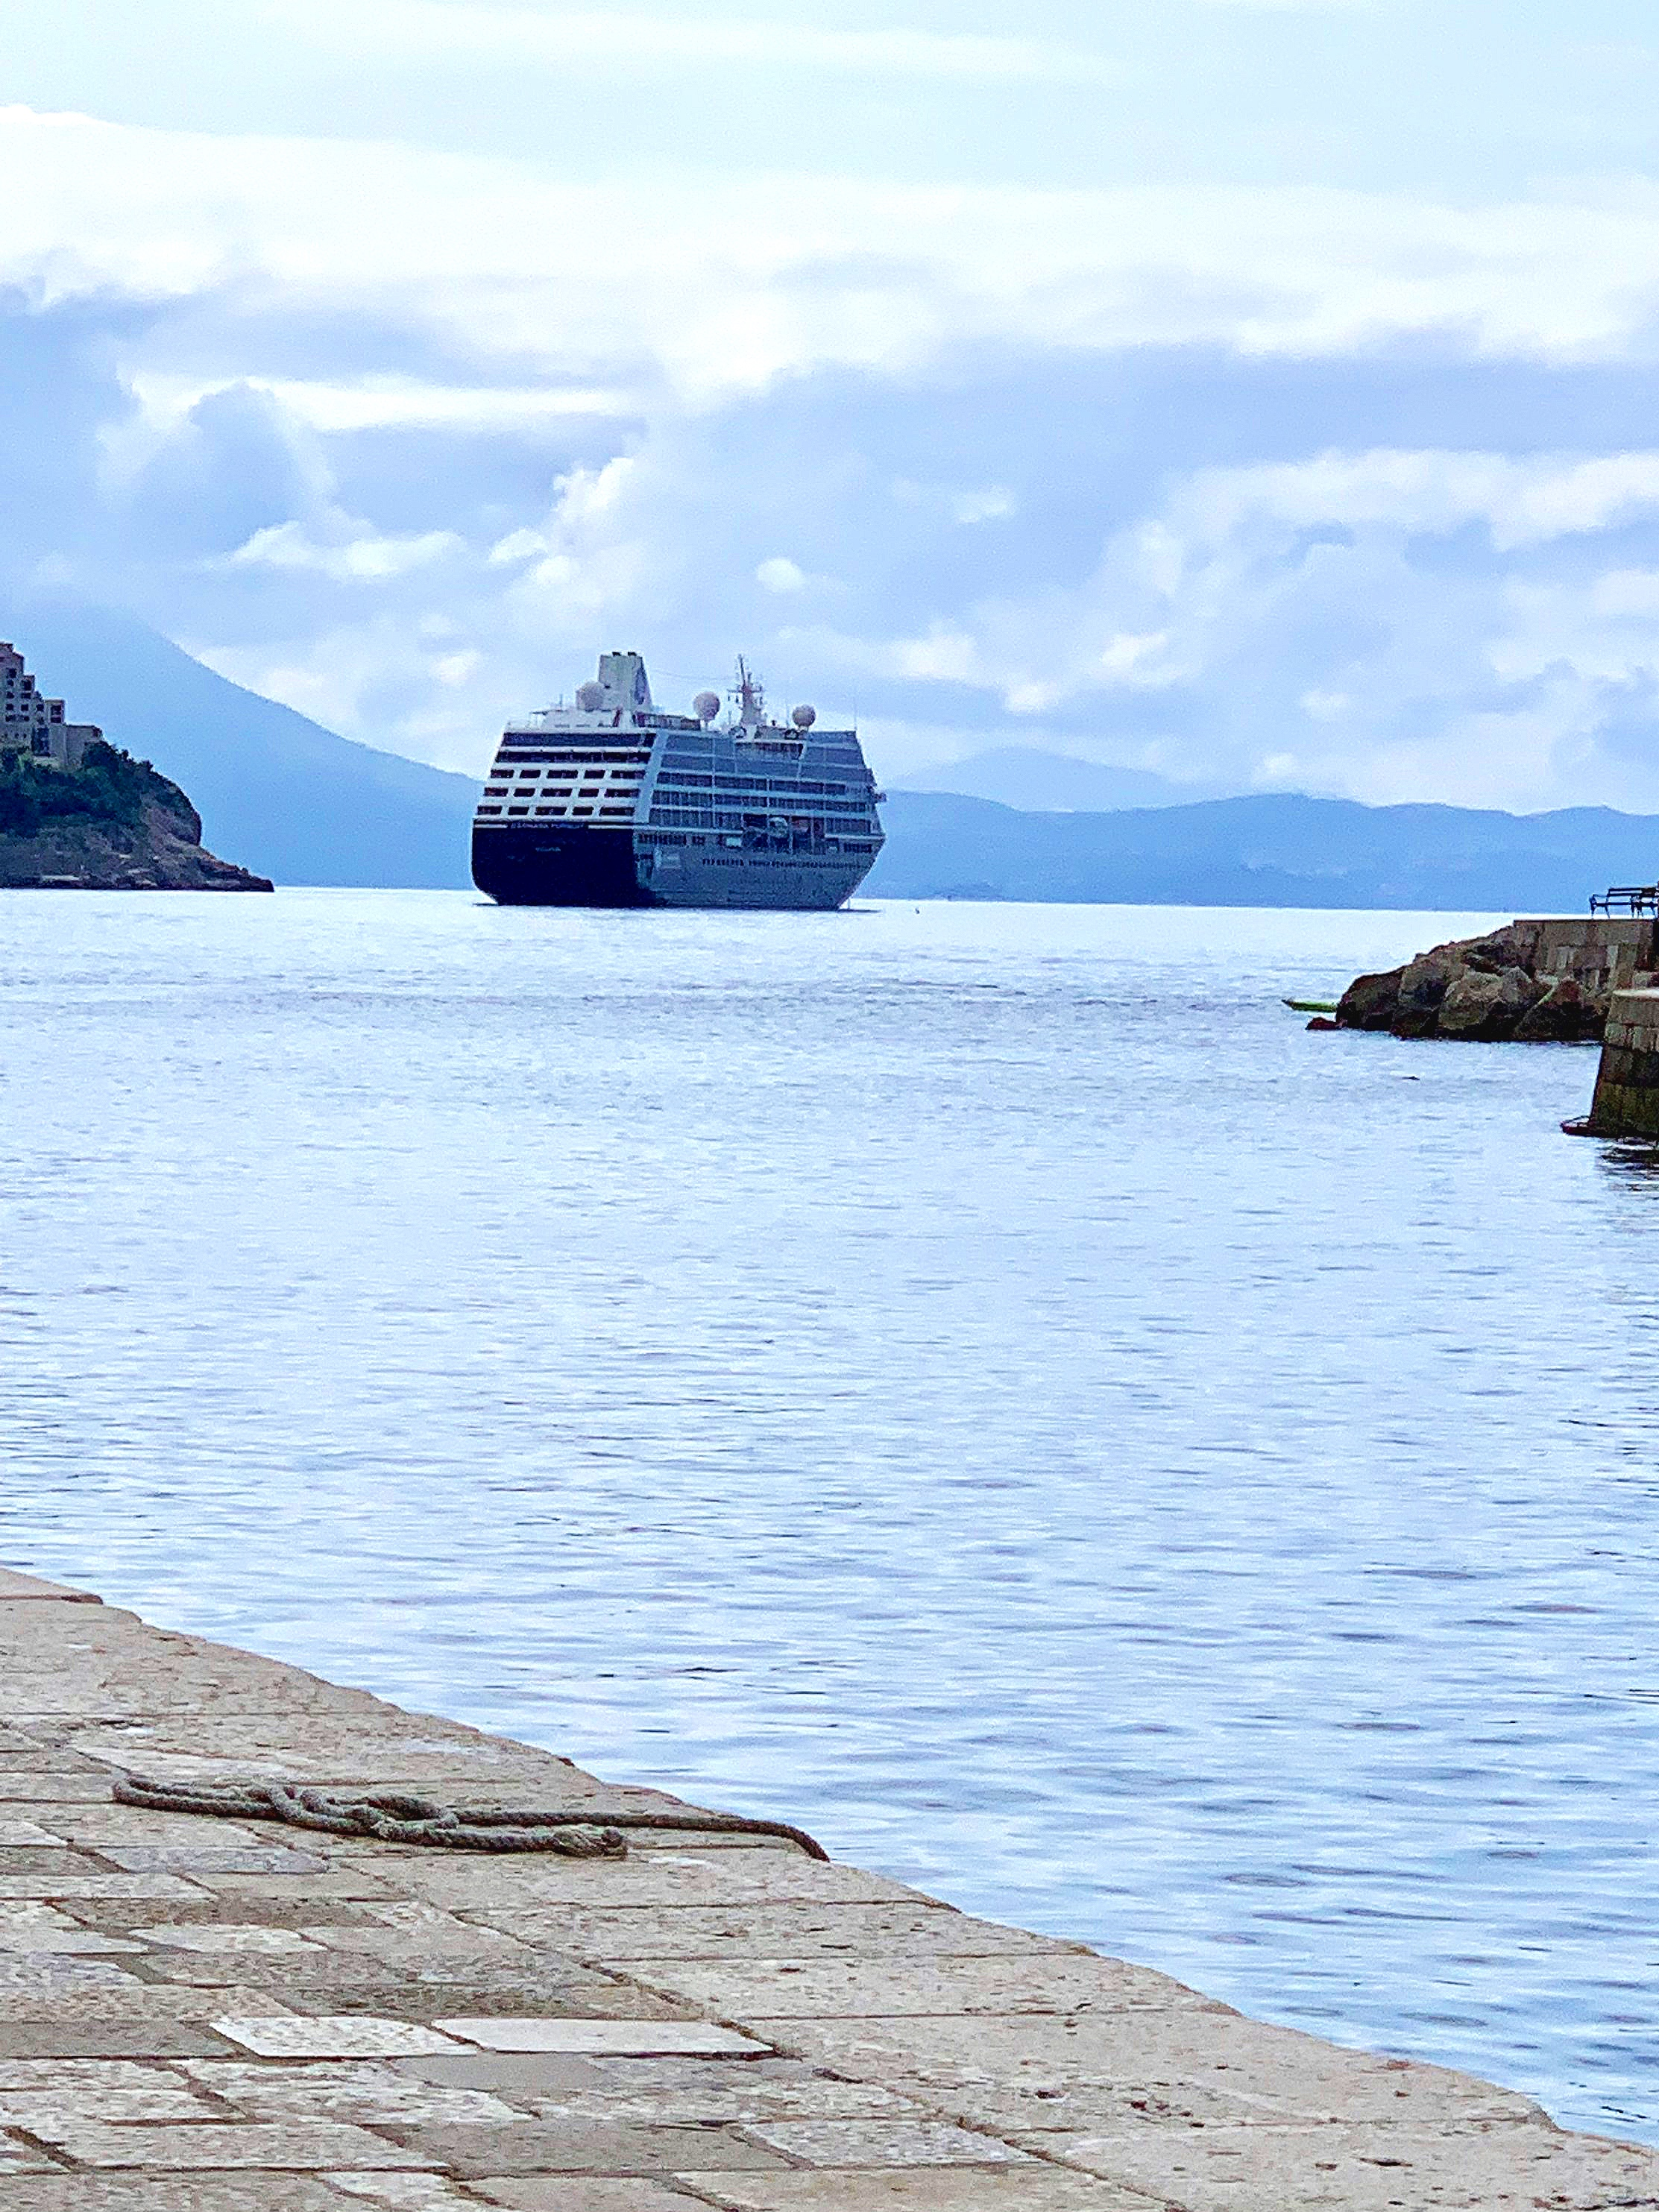 The Pursuit anchored in Dubrovnik harbour.